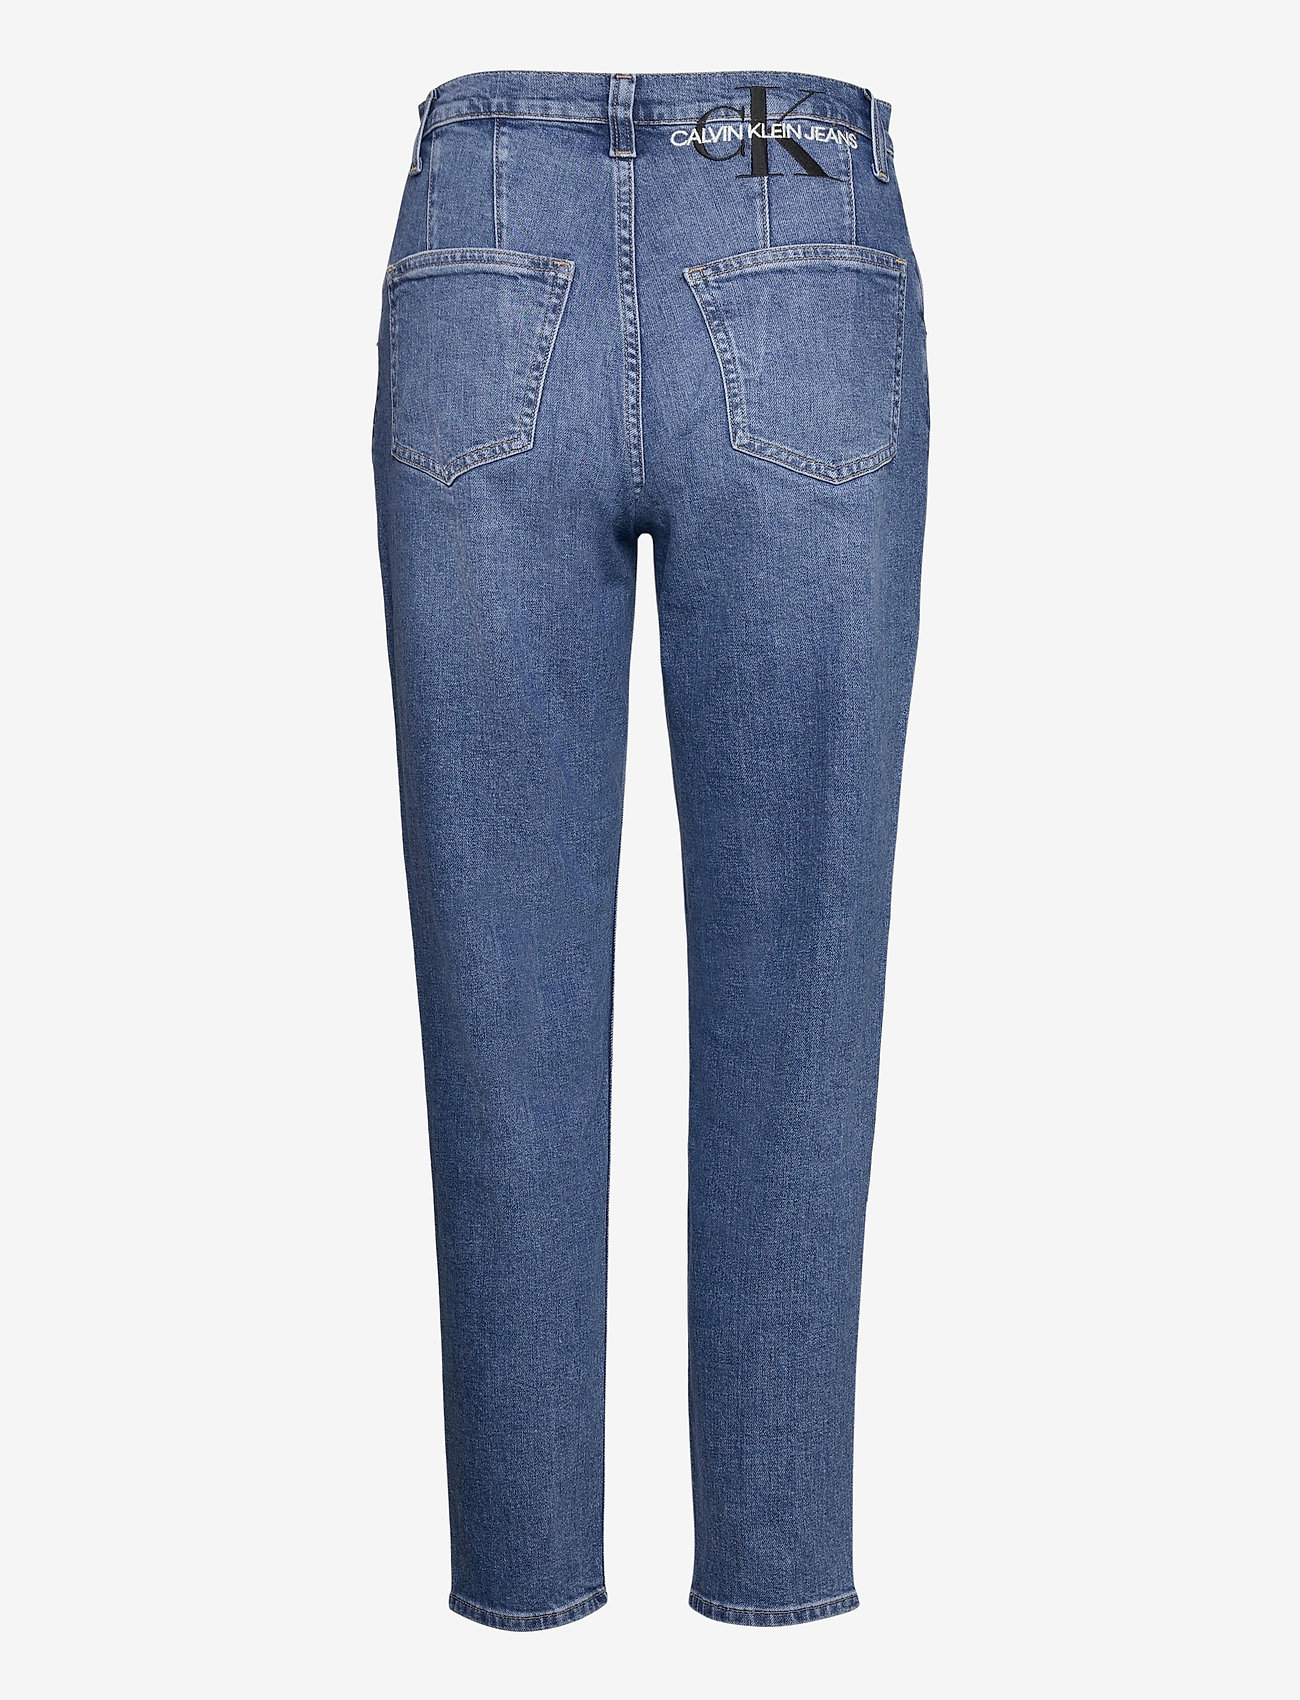 Calvin Klein Jeans - MOM JEAN - mammajeans - denim medium - 1